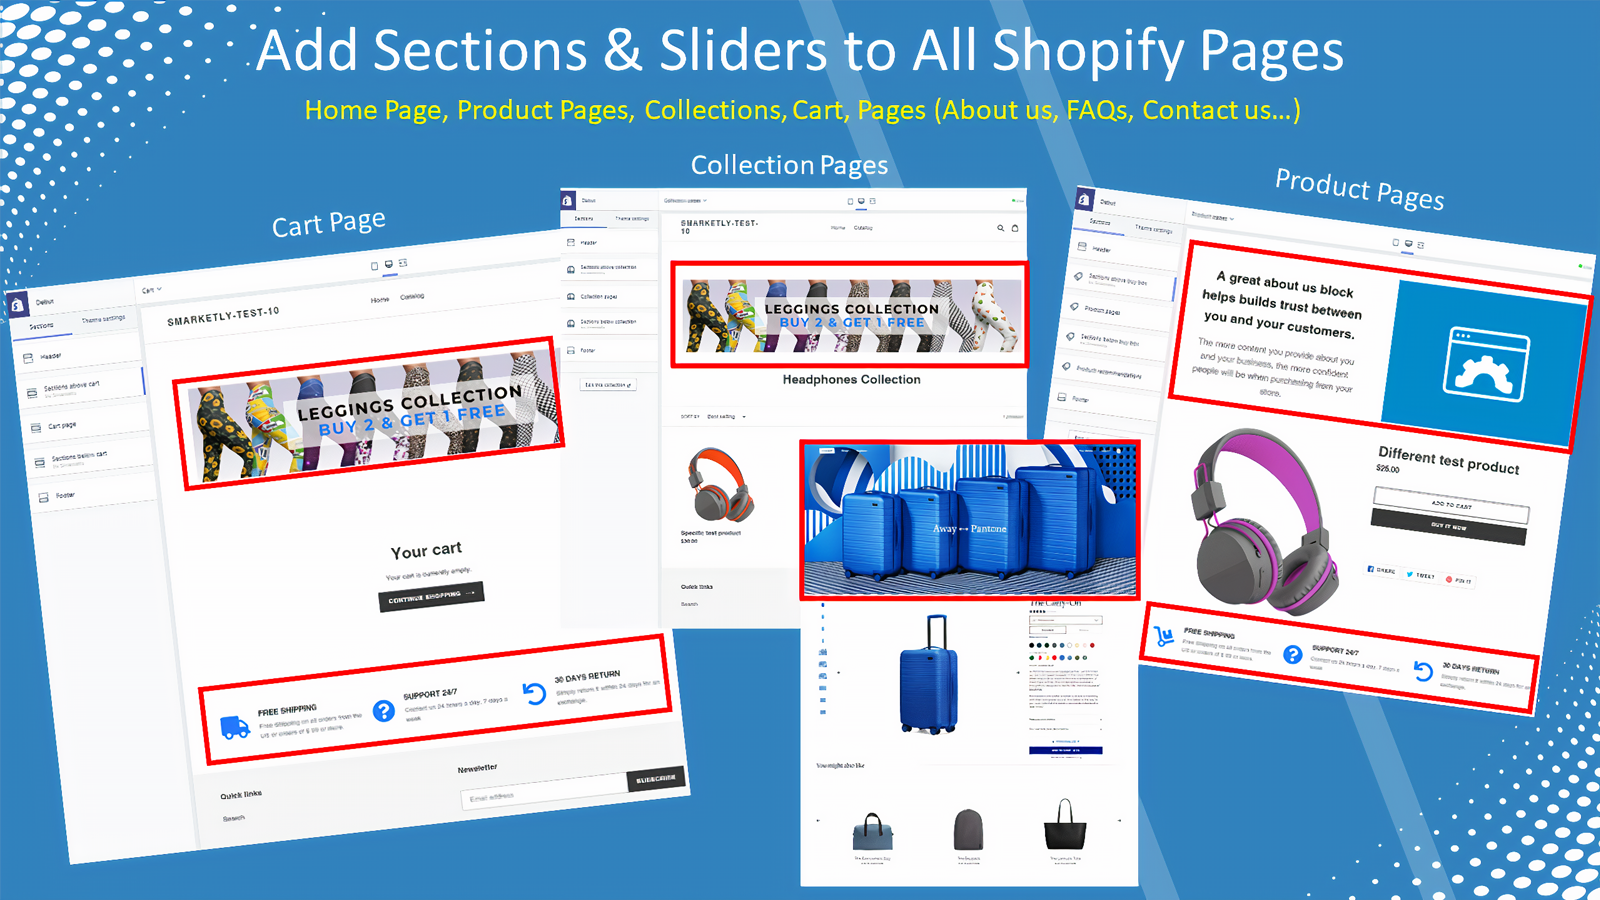 Add Sections & Sliders to All Shopify Pages